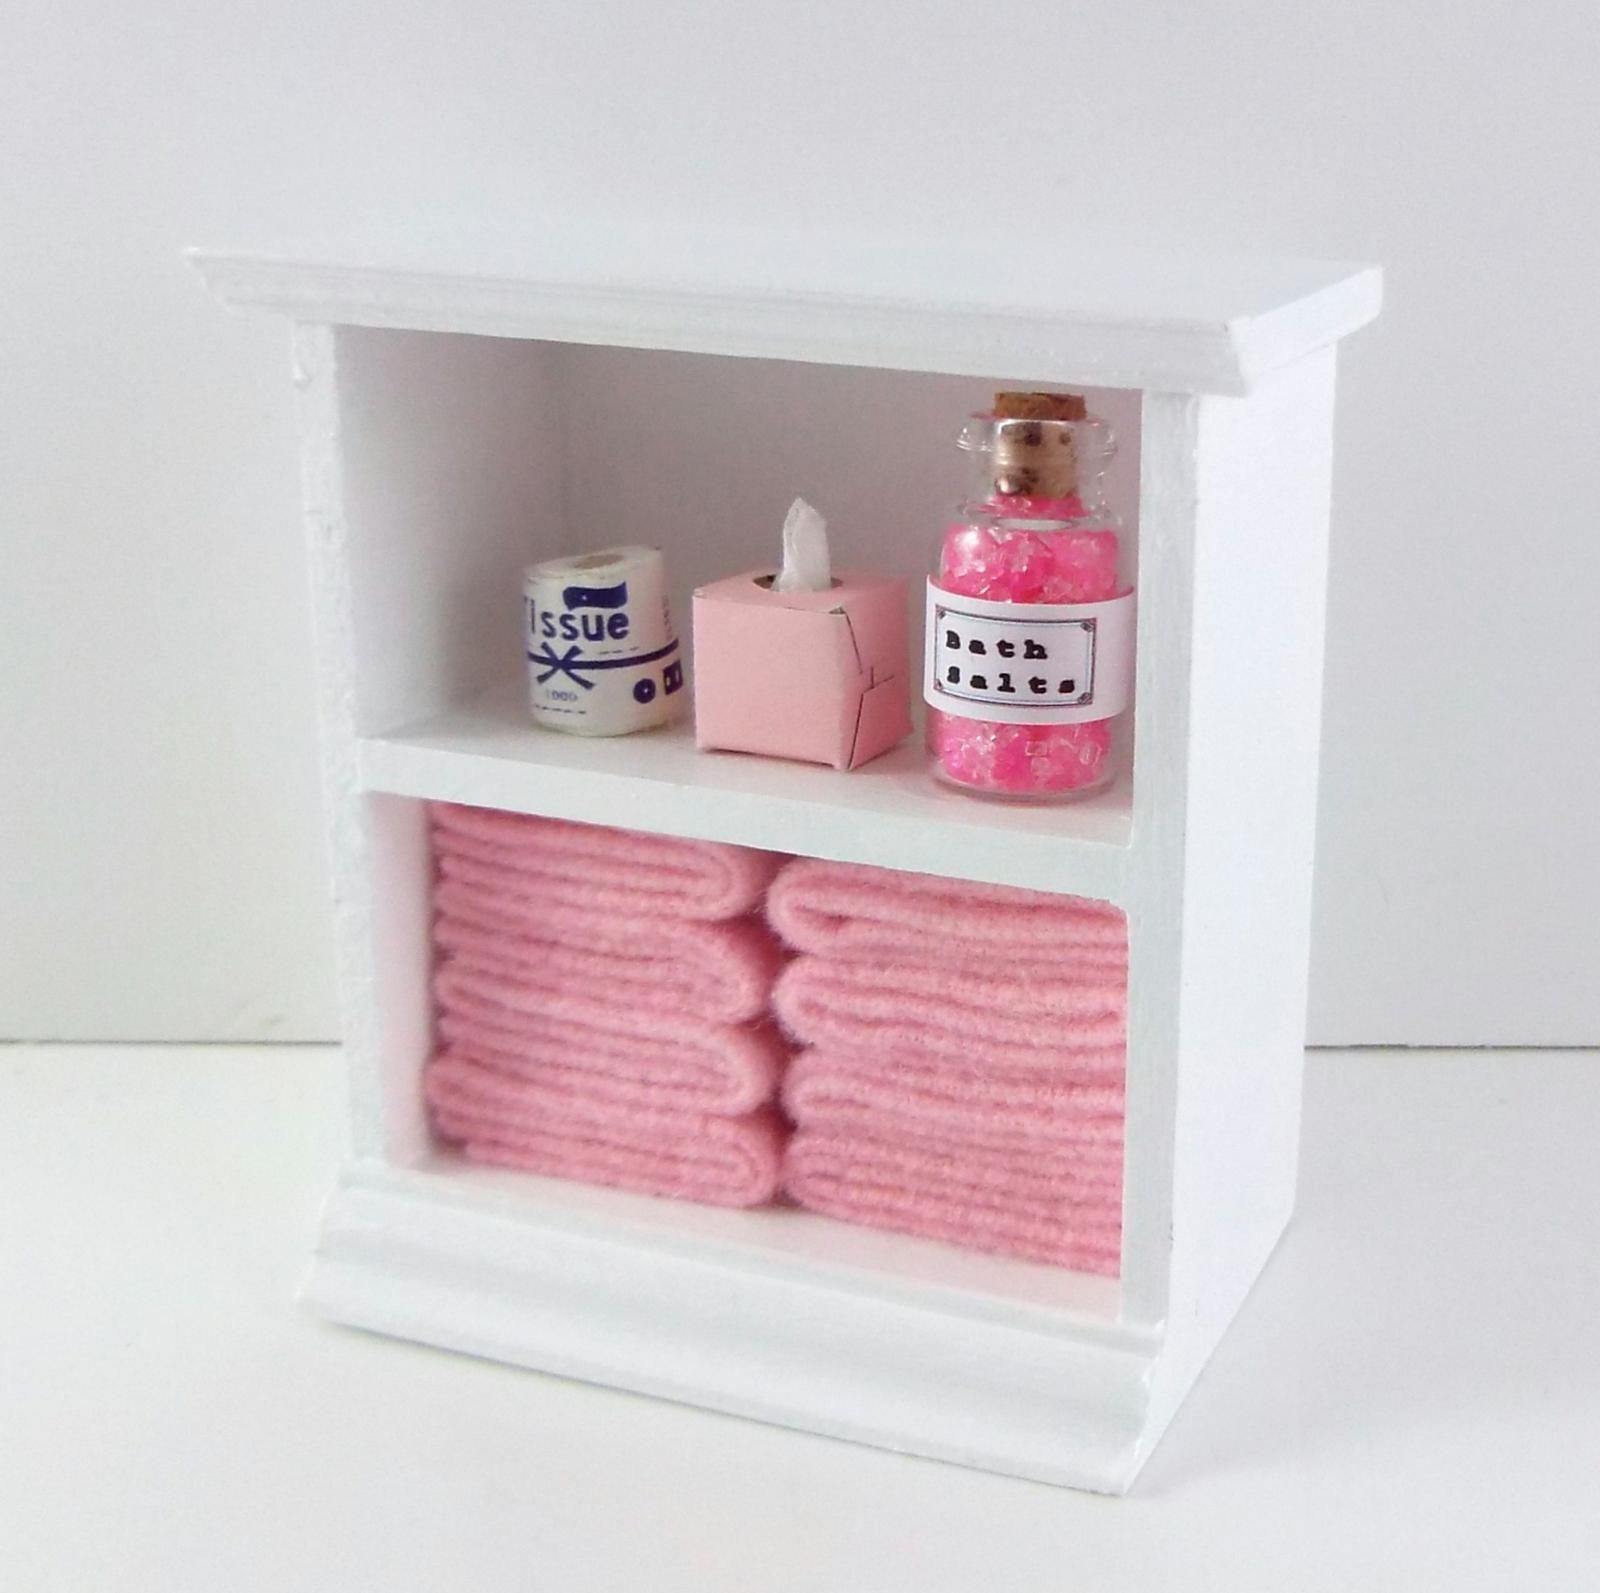 Dolls House Small Shelf Unit with Pink Accessories Miniature Bathroom Furniture 717425011008 | eBay #dollfurniture